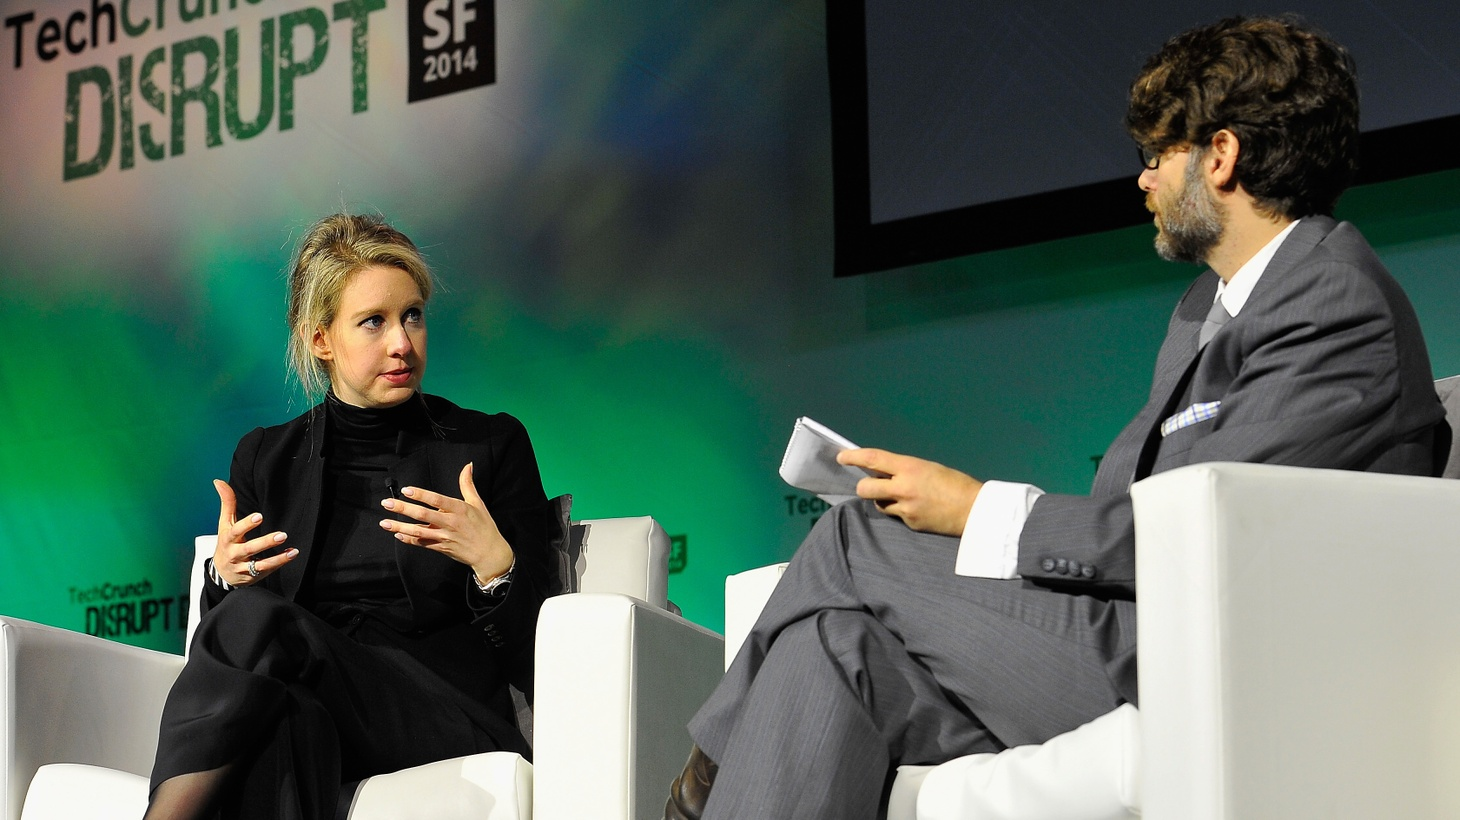 Theranos Founder Elizabeth Holmes (L) and TechCrunch Writer and Moderator Jonathan Shieber speak onstage at TechCrunch Disrupt on September 8, 2014 in San Francisco, California.